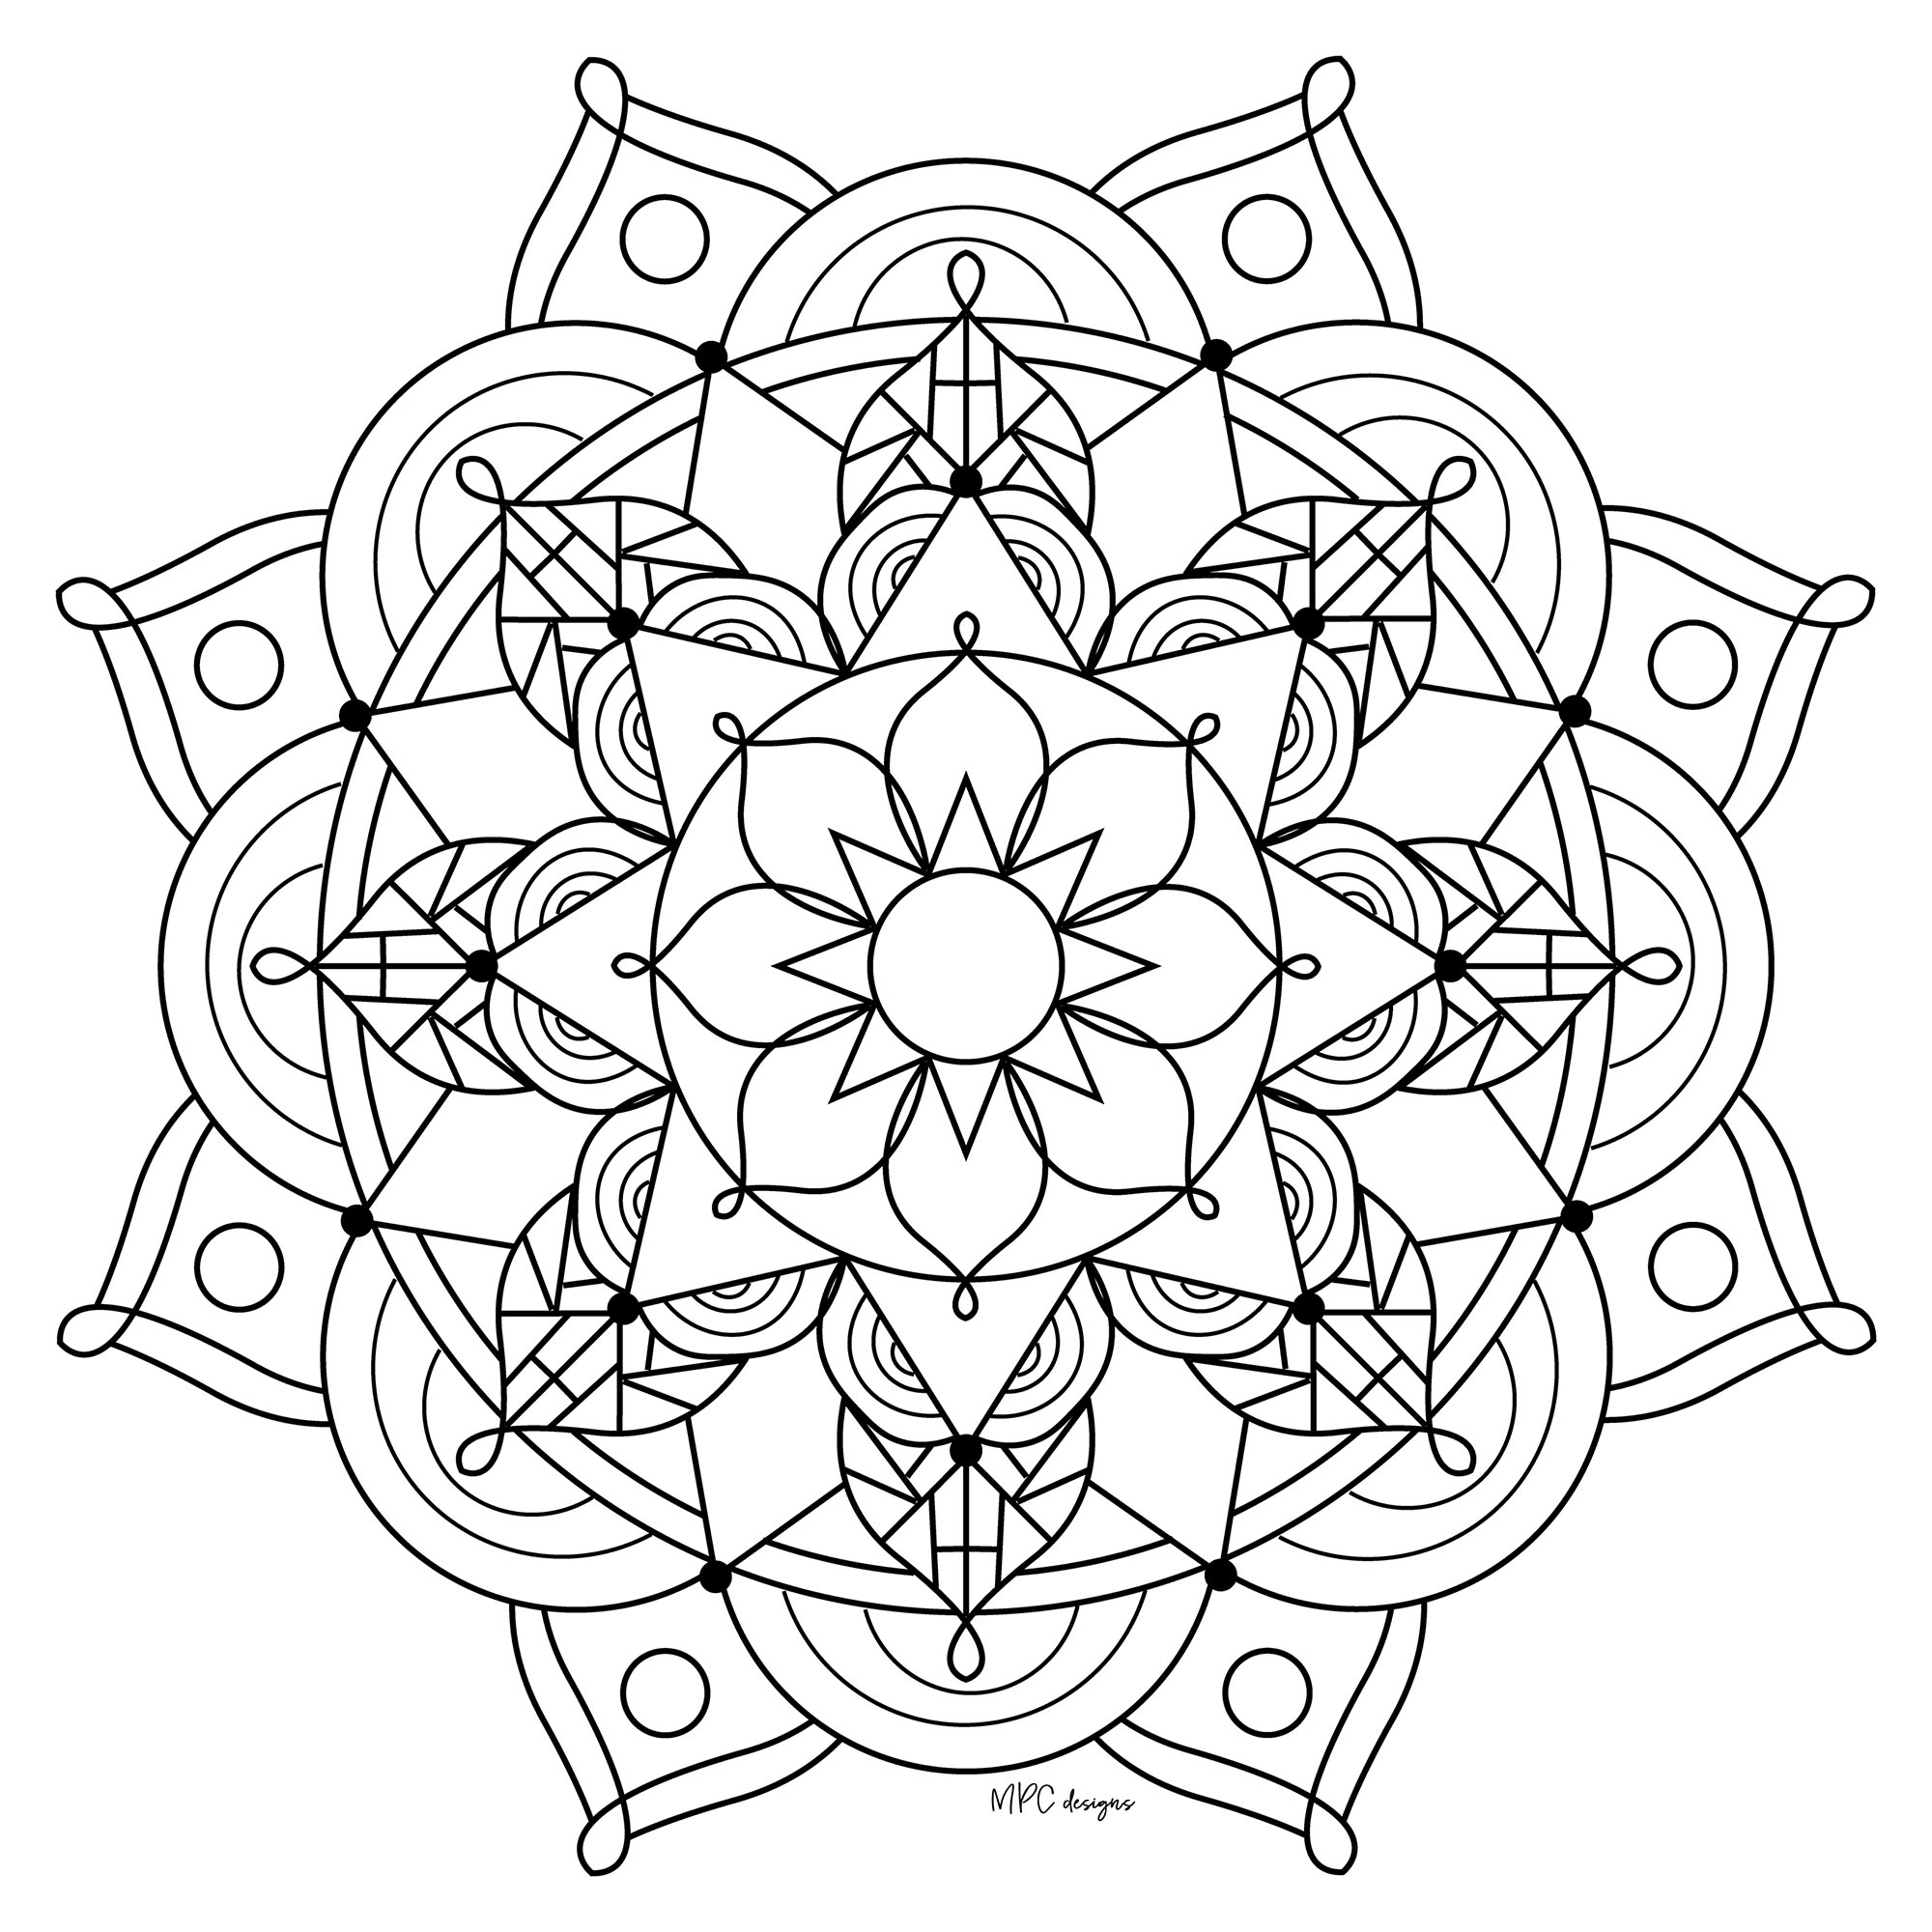 Mandala with petals | From the gallery : Mandalas | Artist : MPC Design